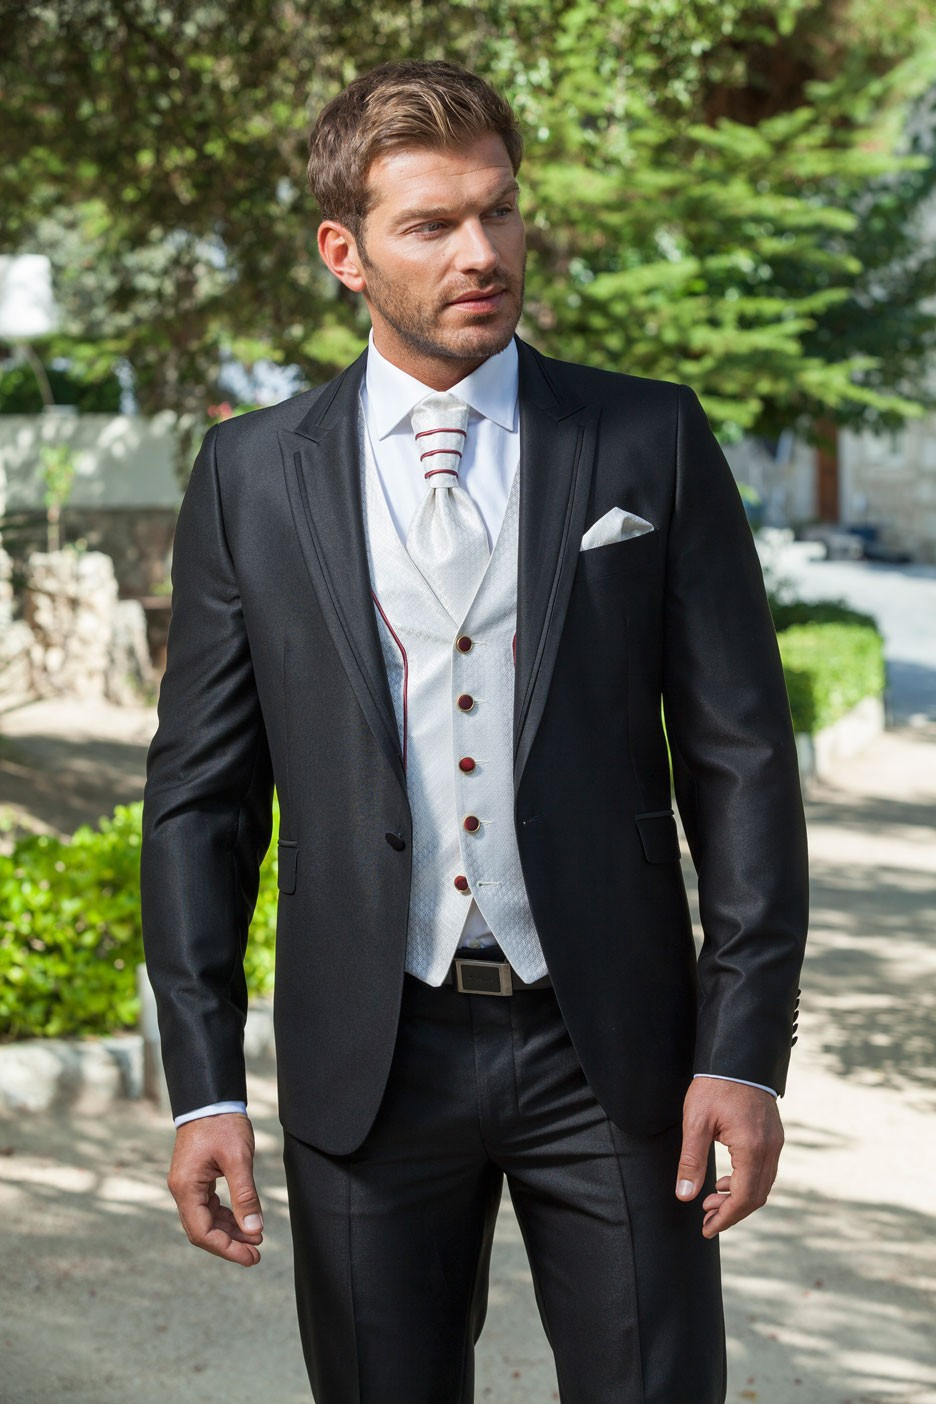 Handsome Designer Customized Charcoal Wedding Ceremony Suit Groom Tuxedos Bridegroom And Groomsman Jacket Pants Tie Vest In Suits From Men S Clothing